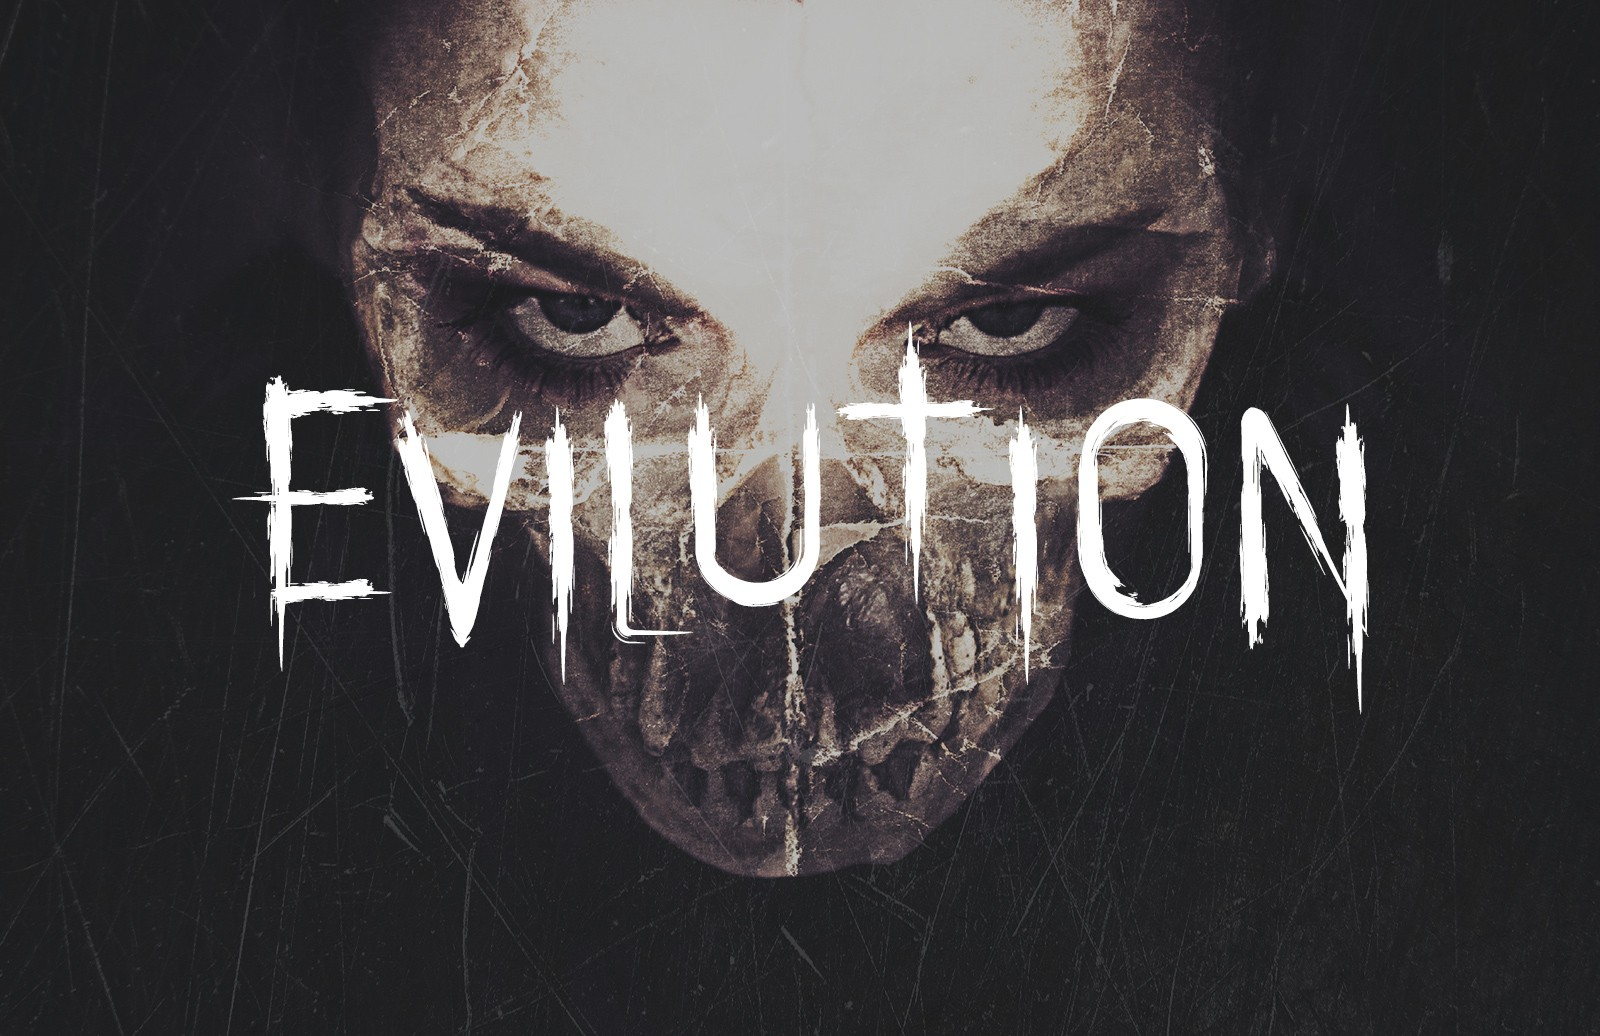 Evilution - Horror Typeface